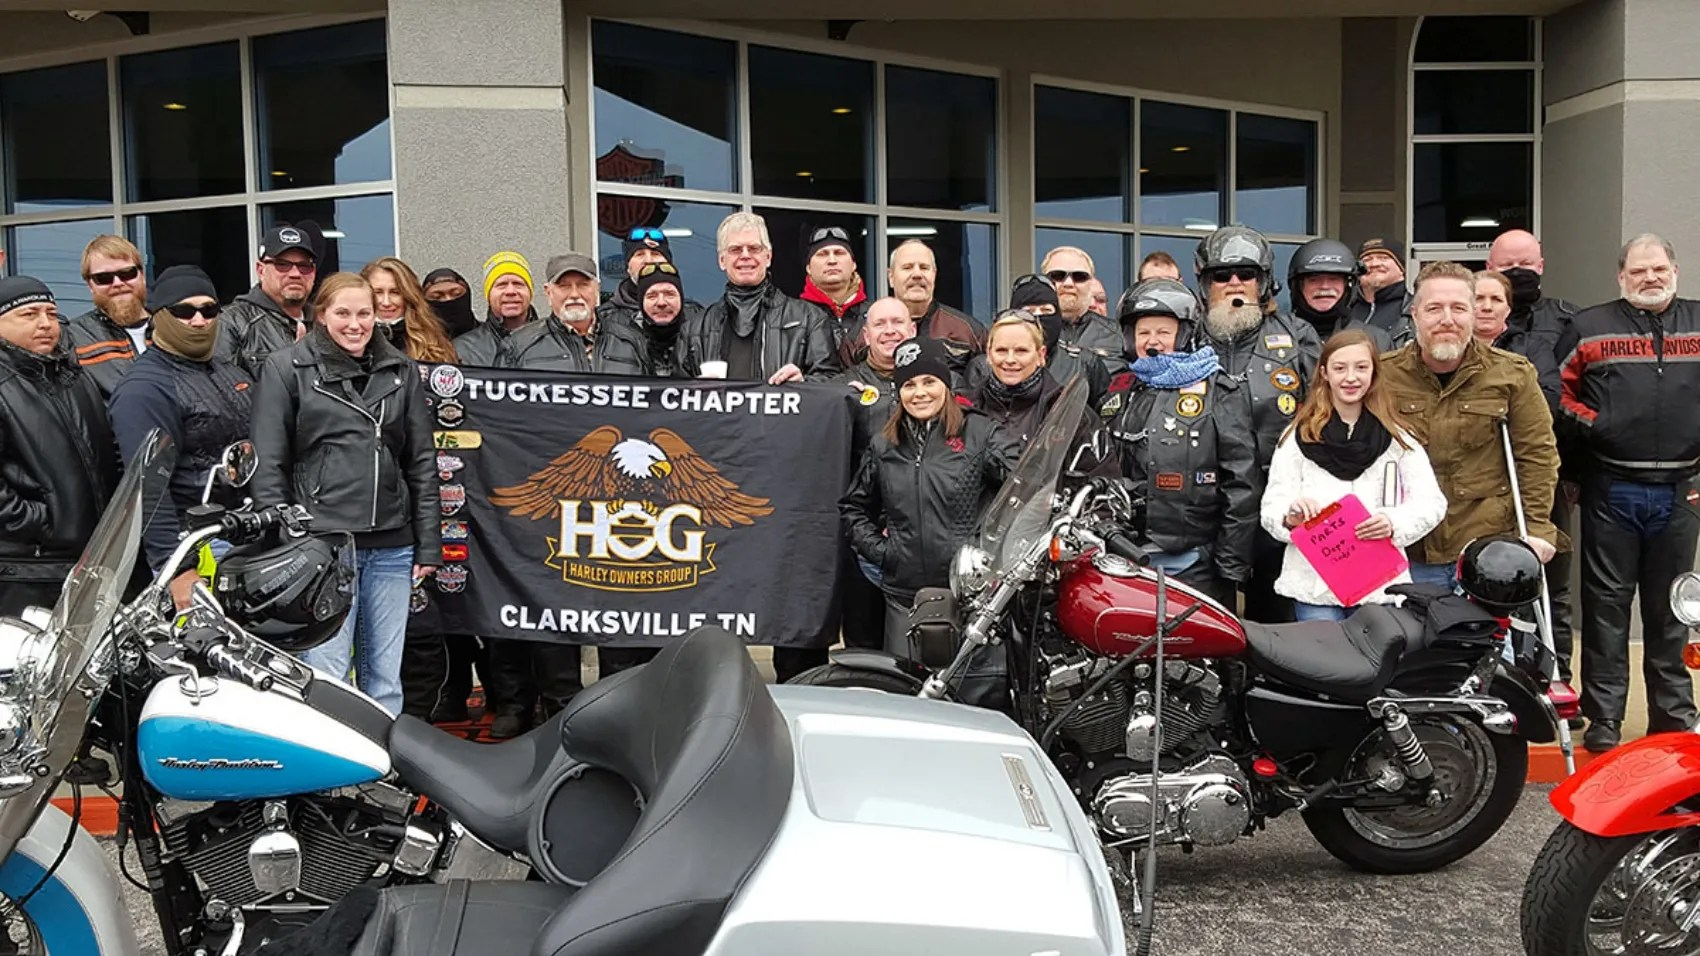 Tuckesee Chapter Of The Harley Owners Group